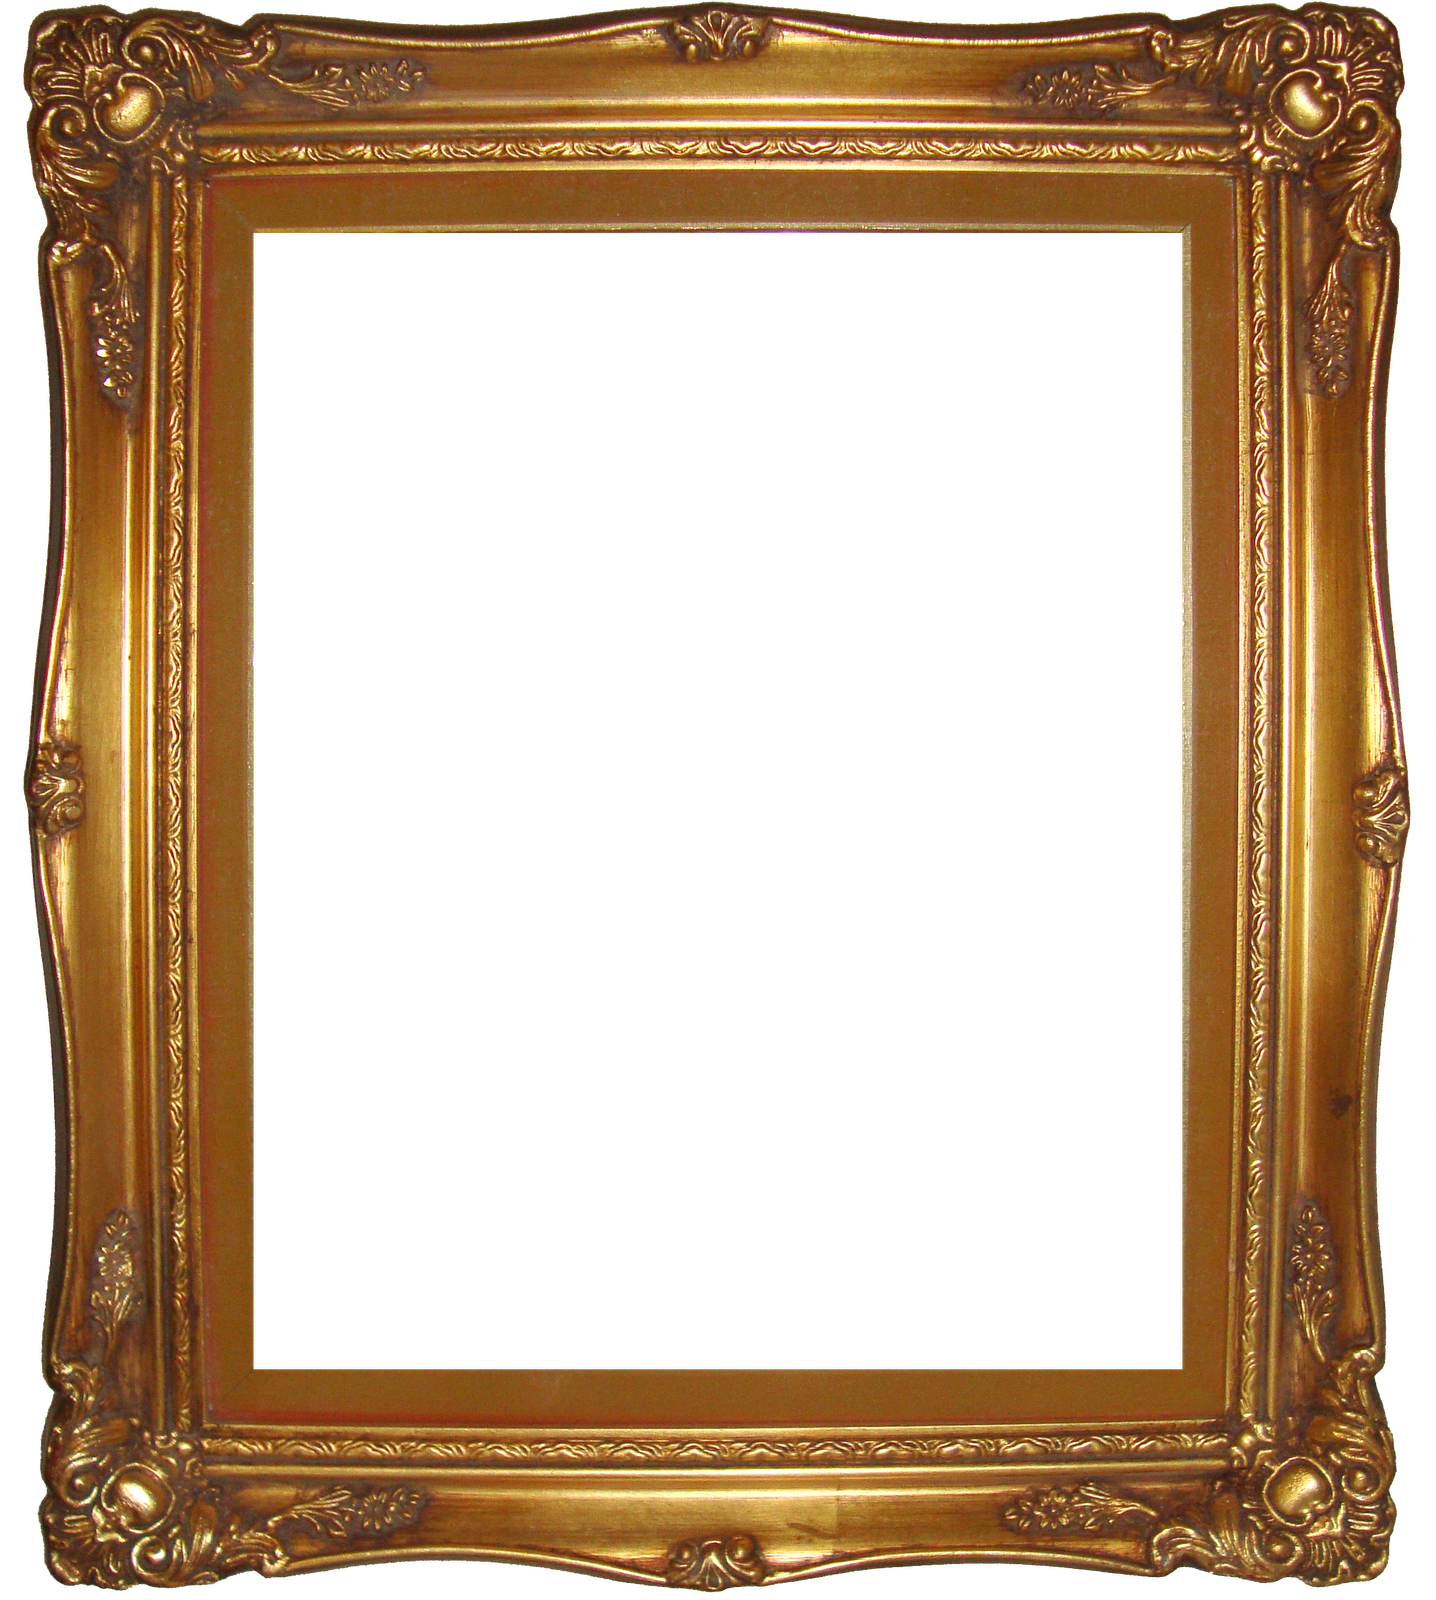 Antique Gold Picture Frames Free